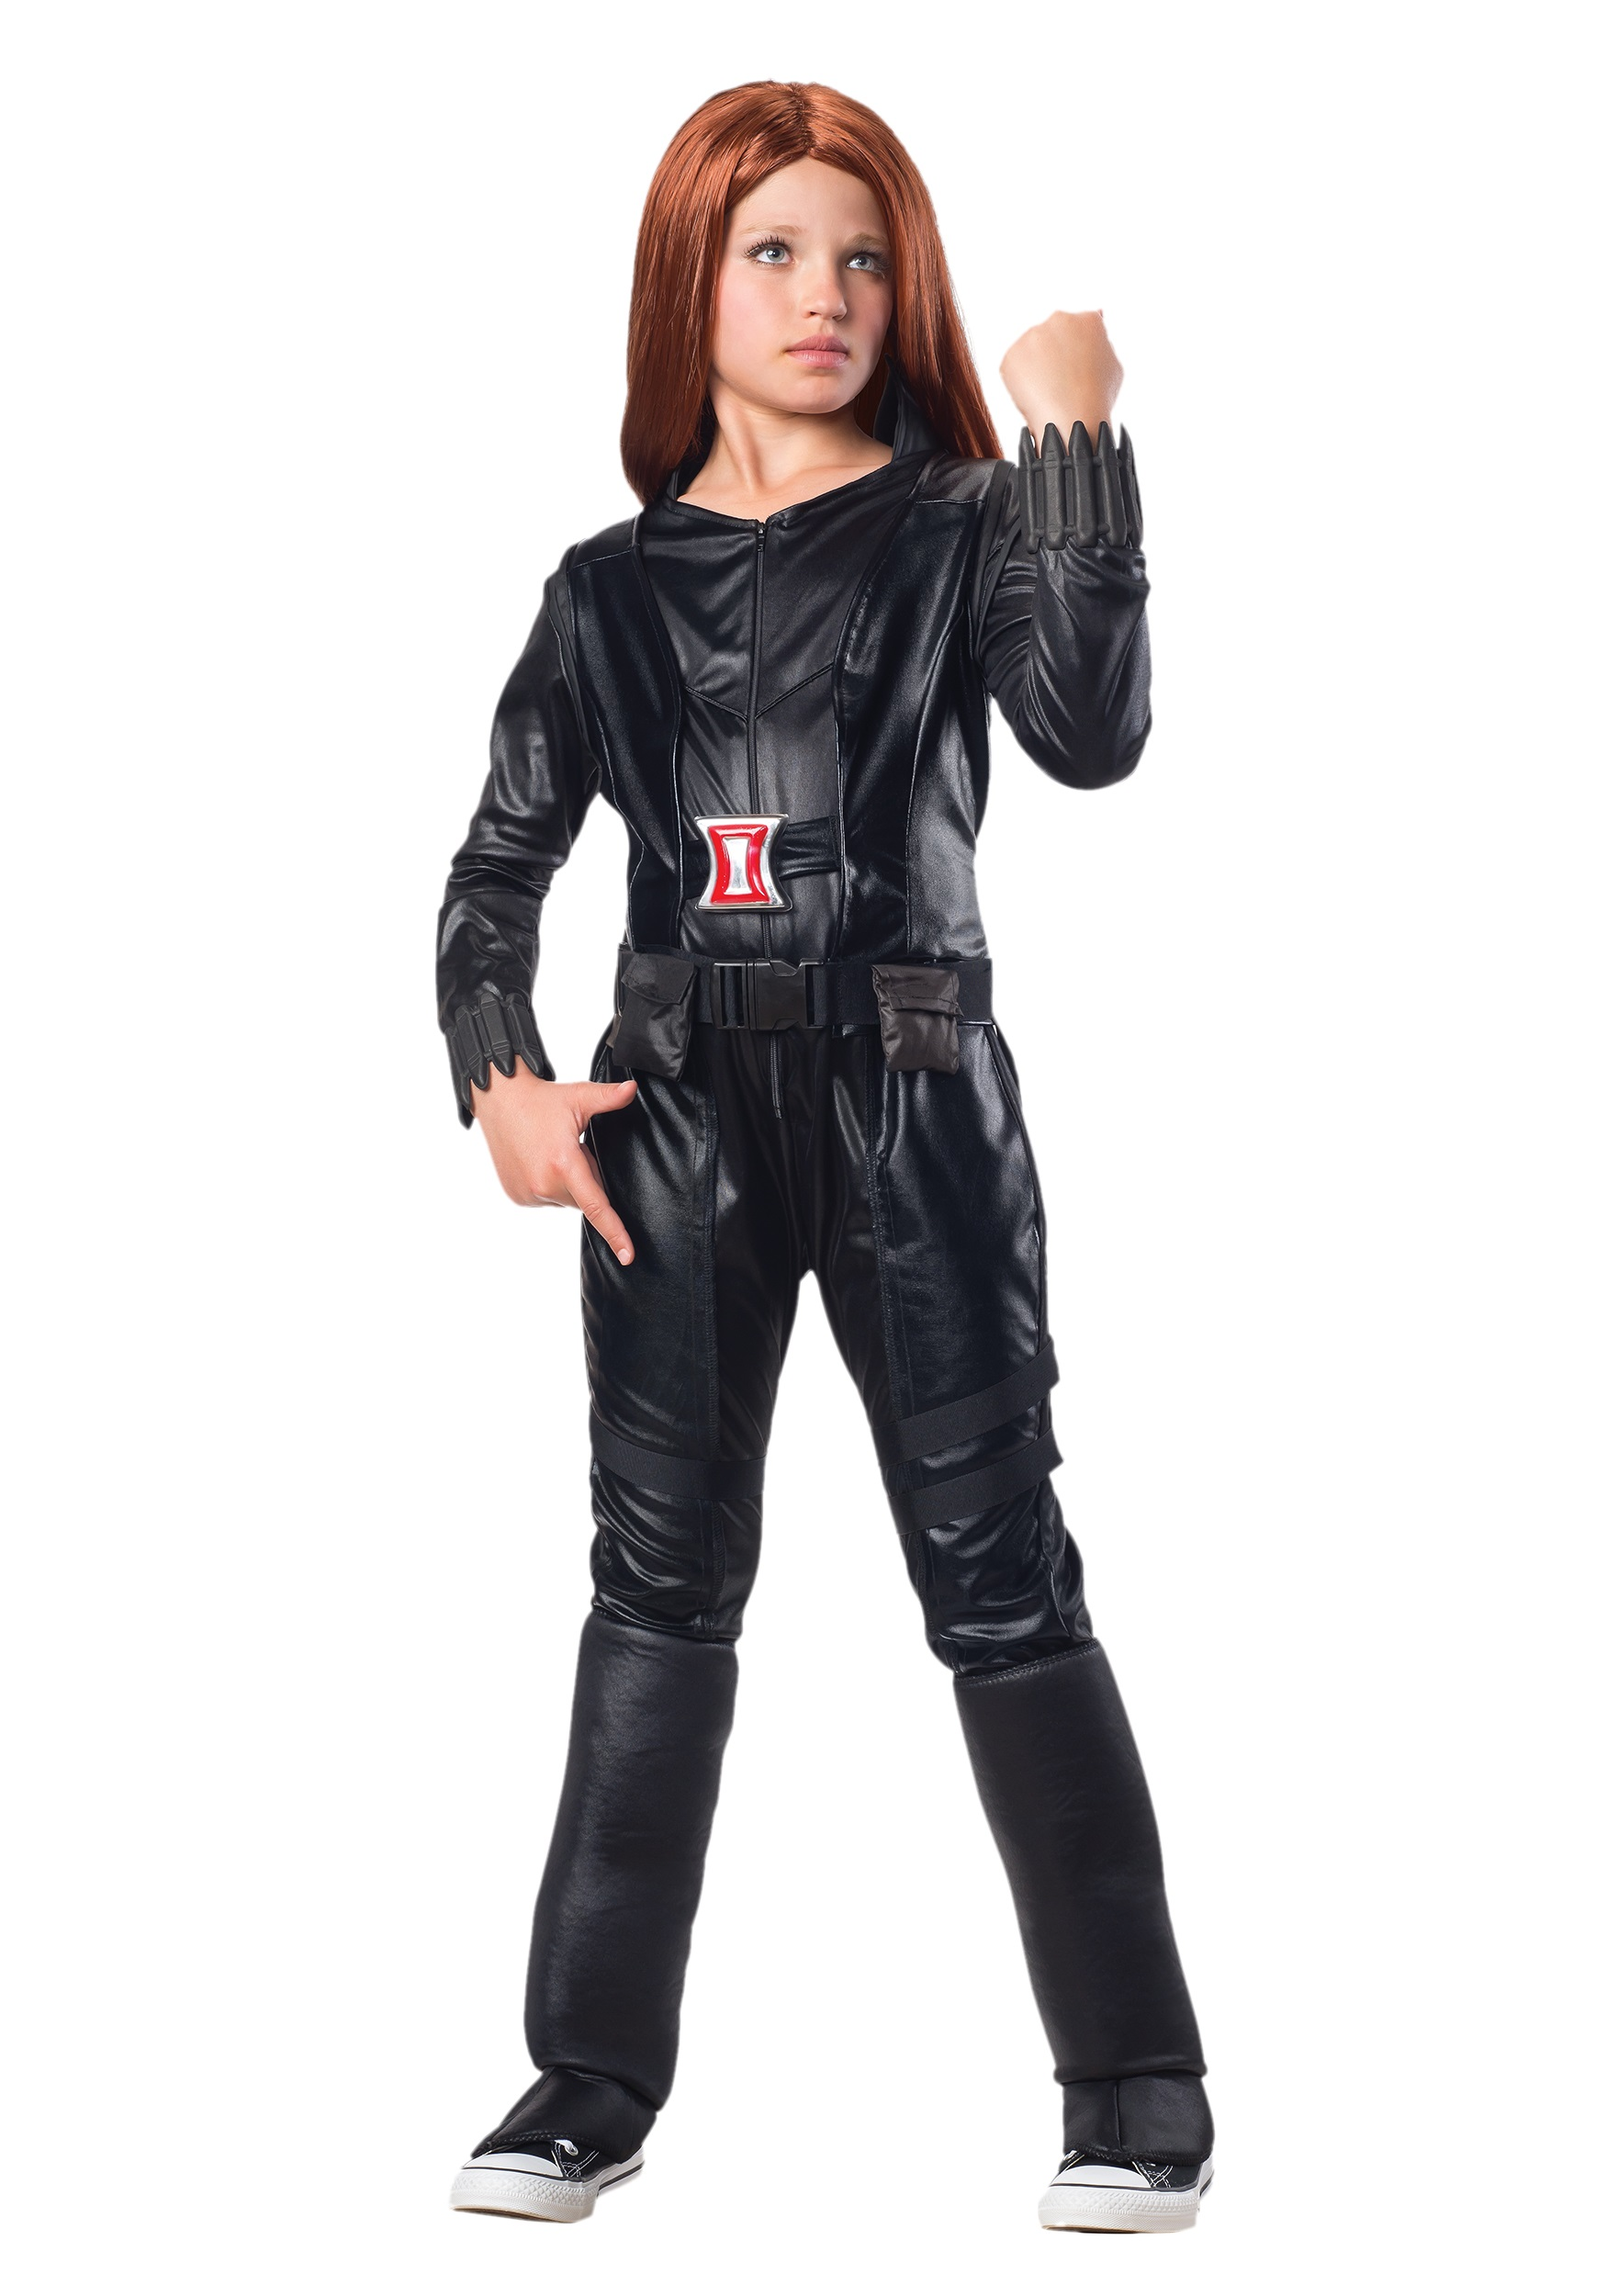 How to make a marvel black widow costume - photo#10